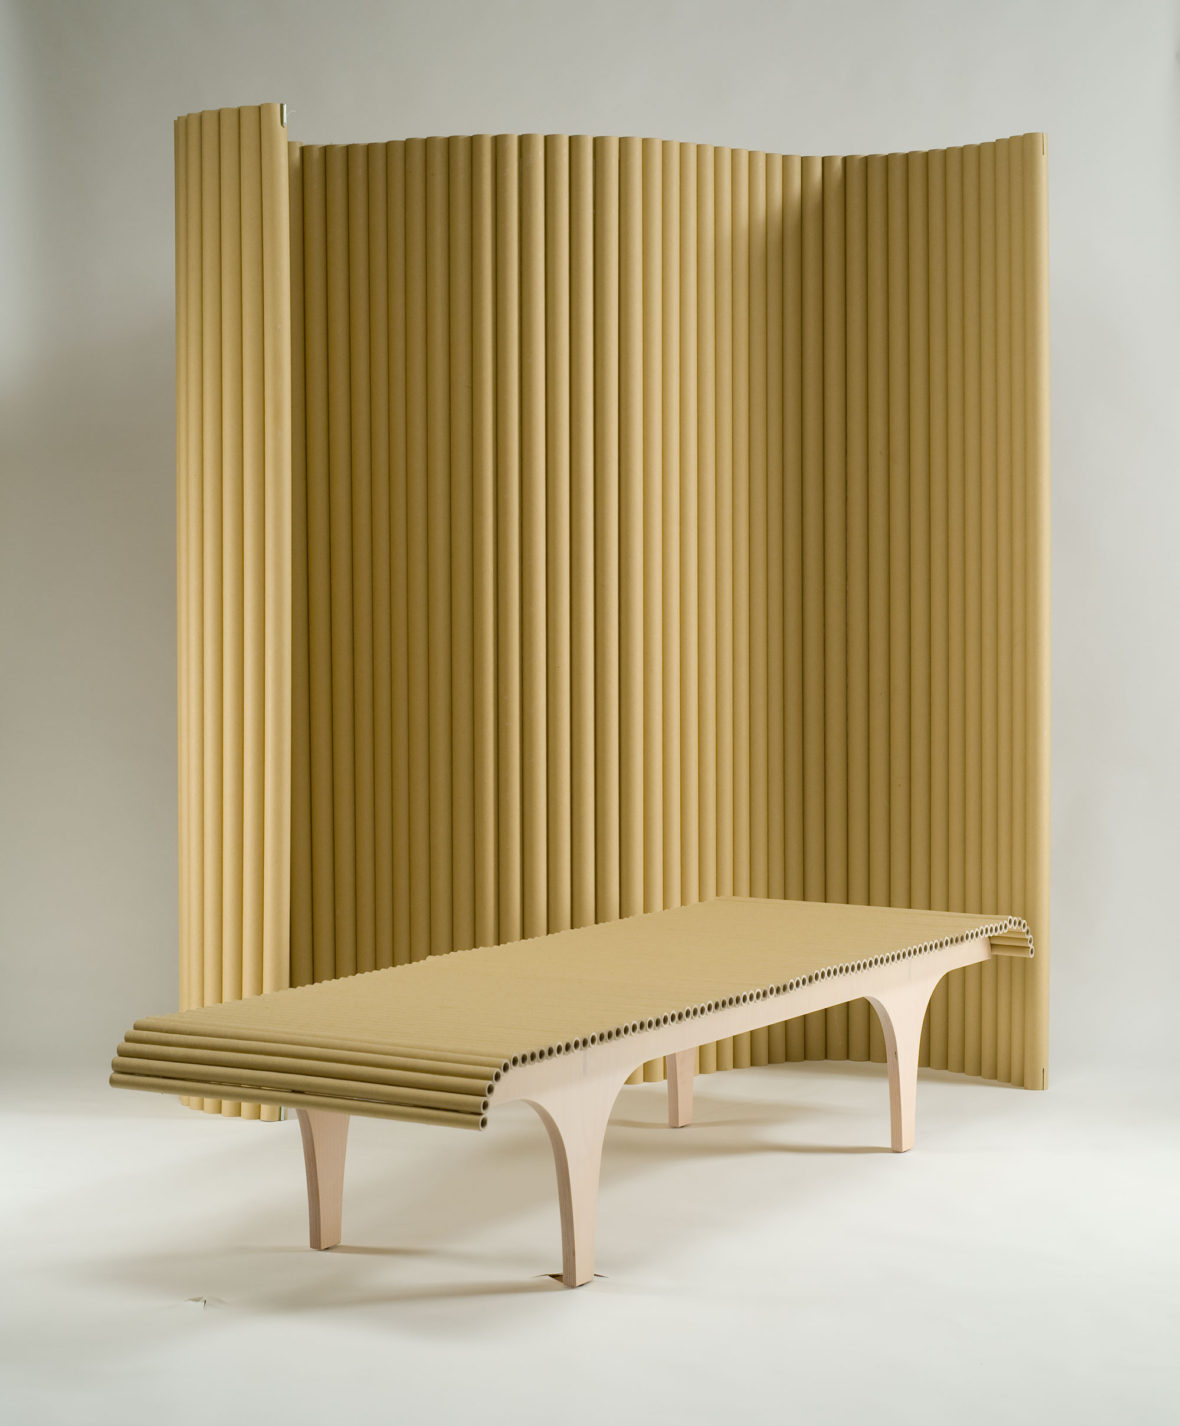 Tall adjustable screen made of vertical cardboard tubes and wood-framed bench with cardboard-tube seat.